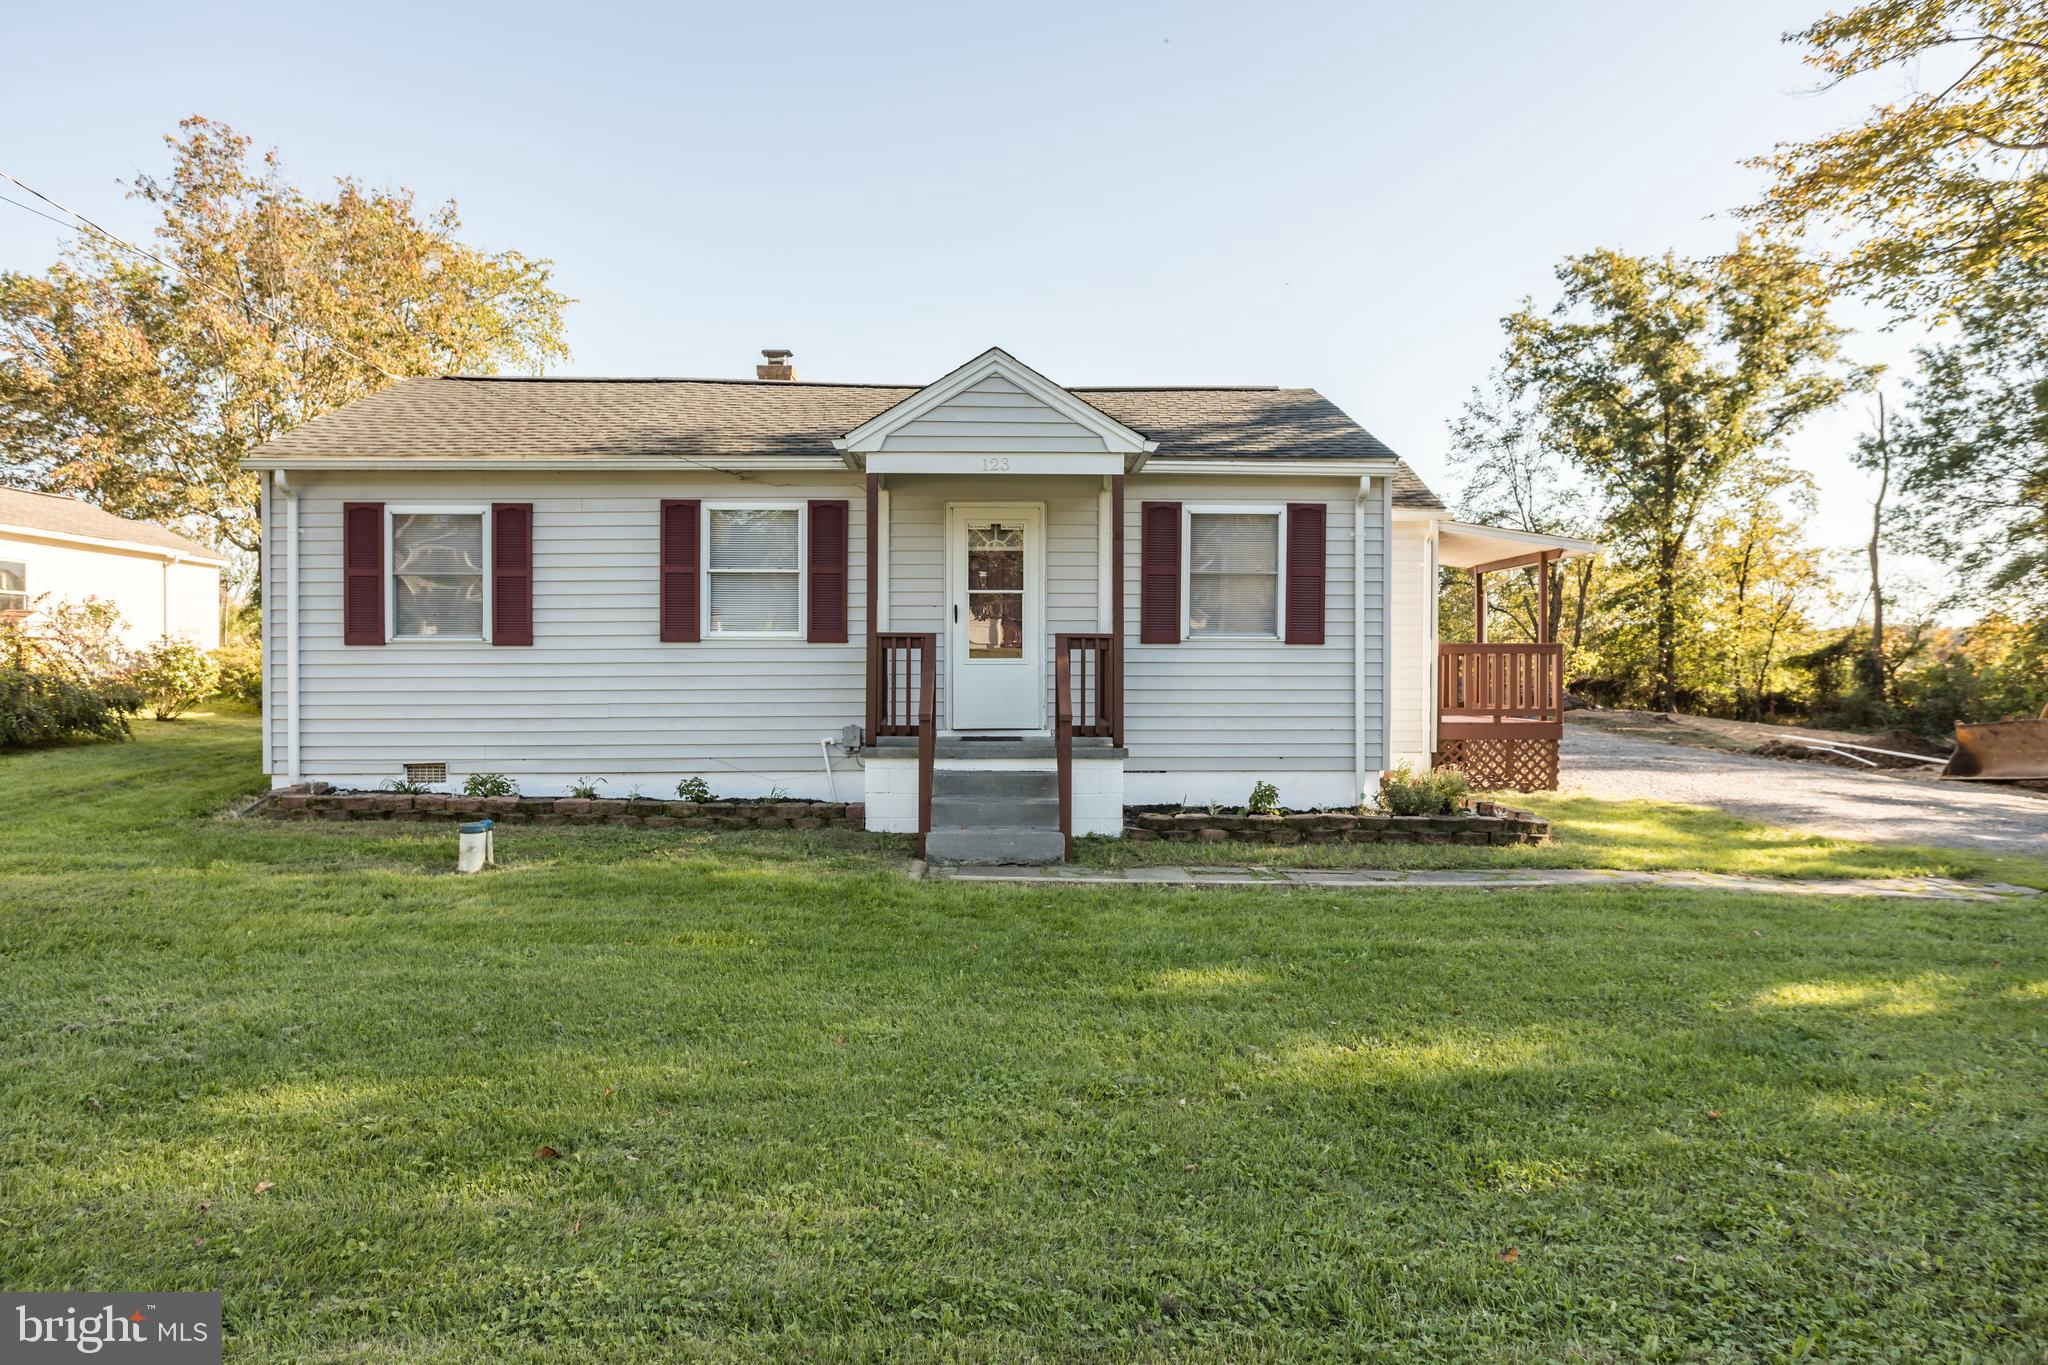 Great location for this ranch style home that has a pasture & mountain view in the rear. Level home